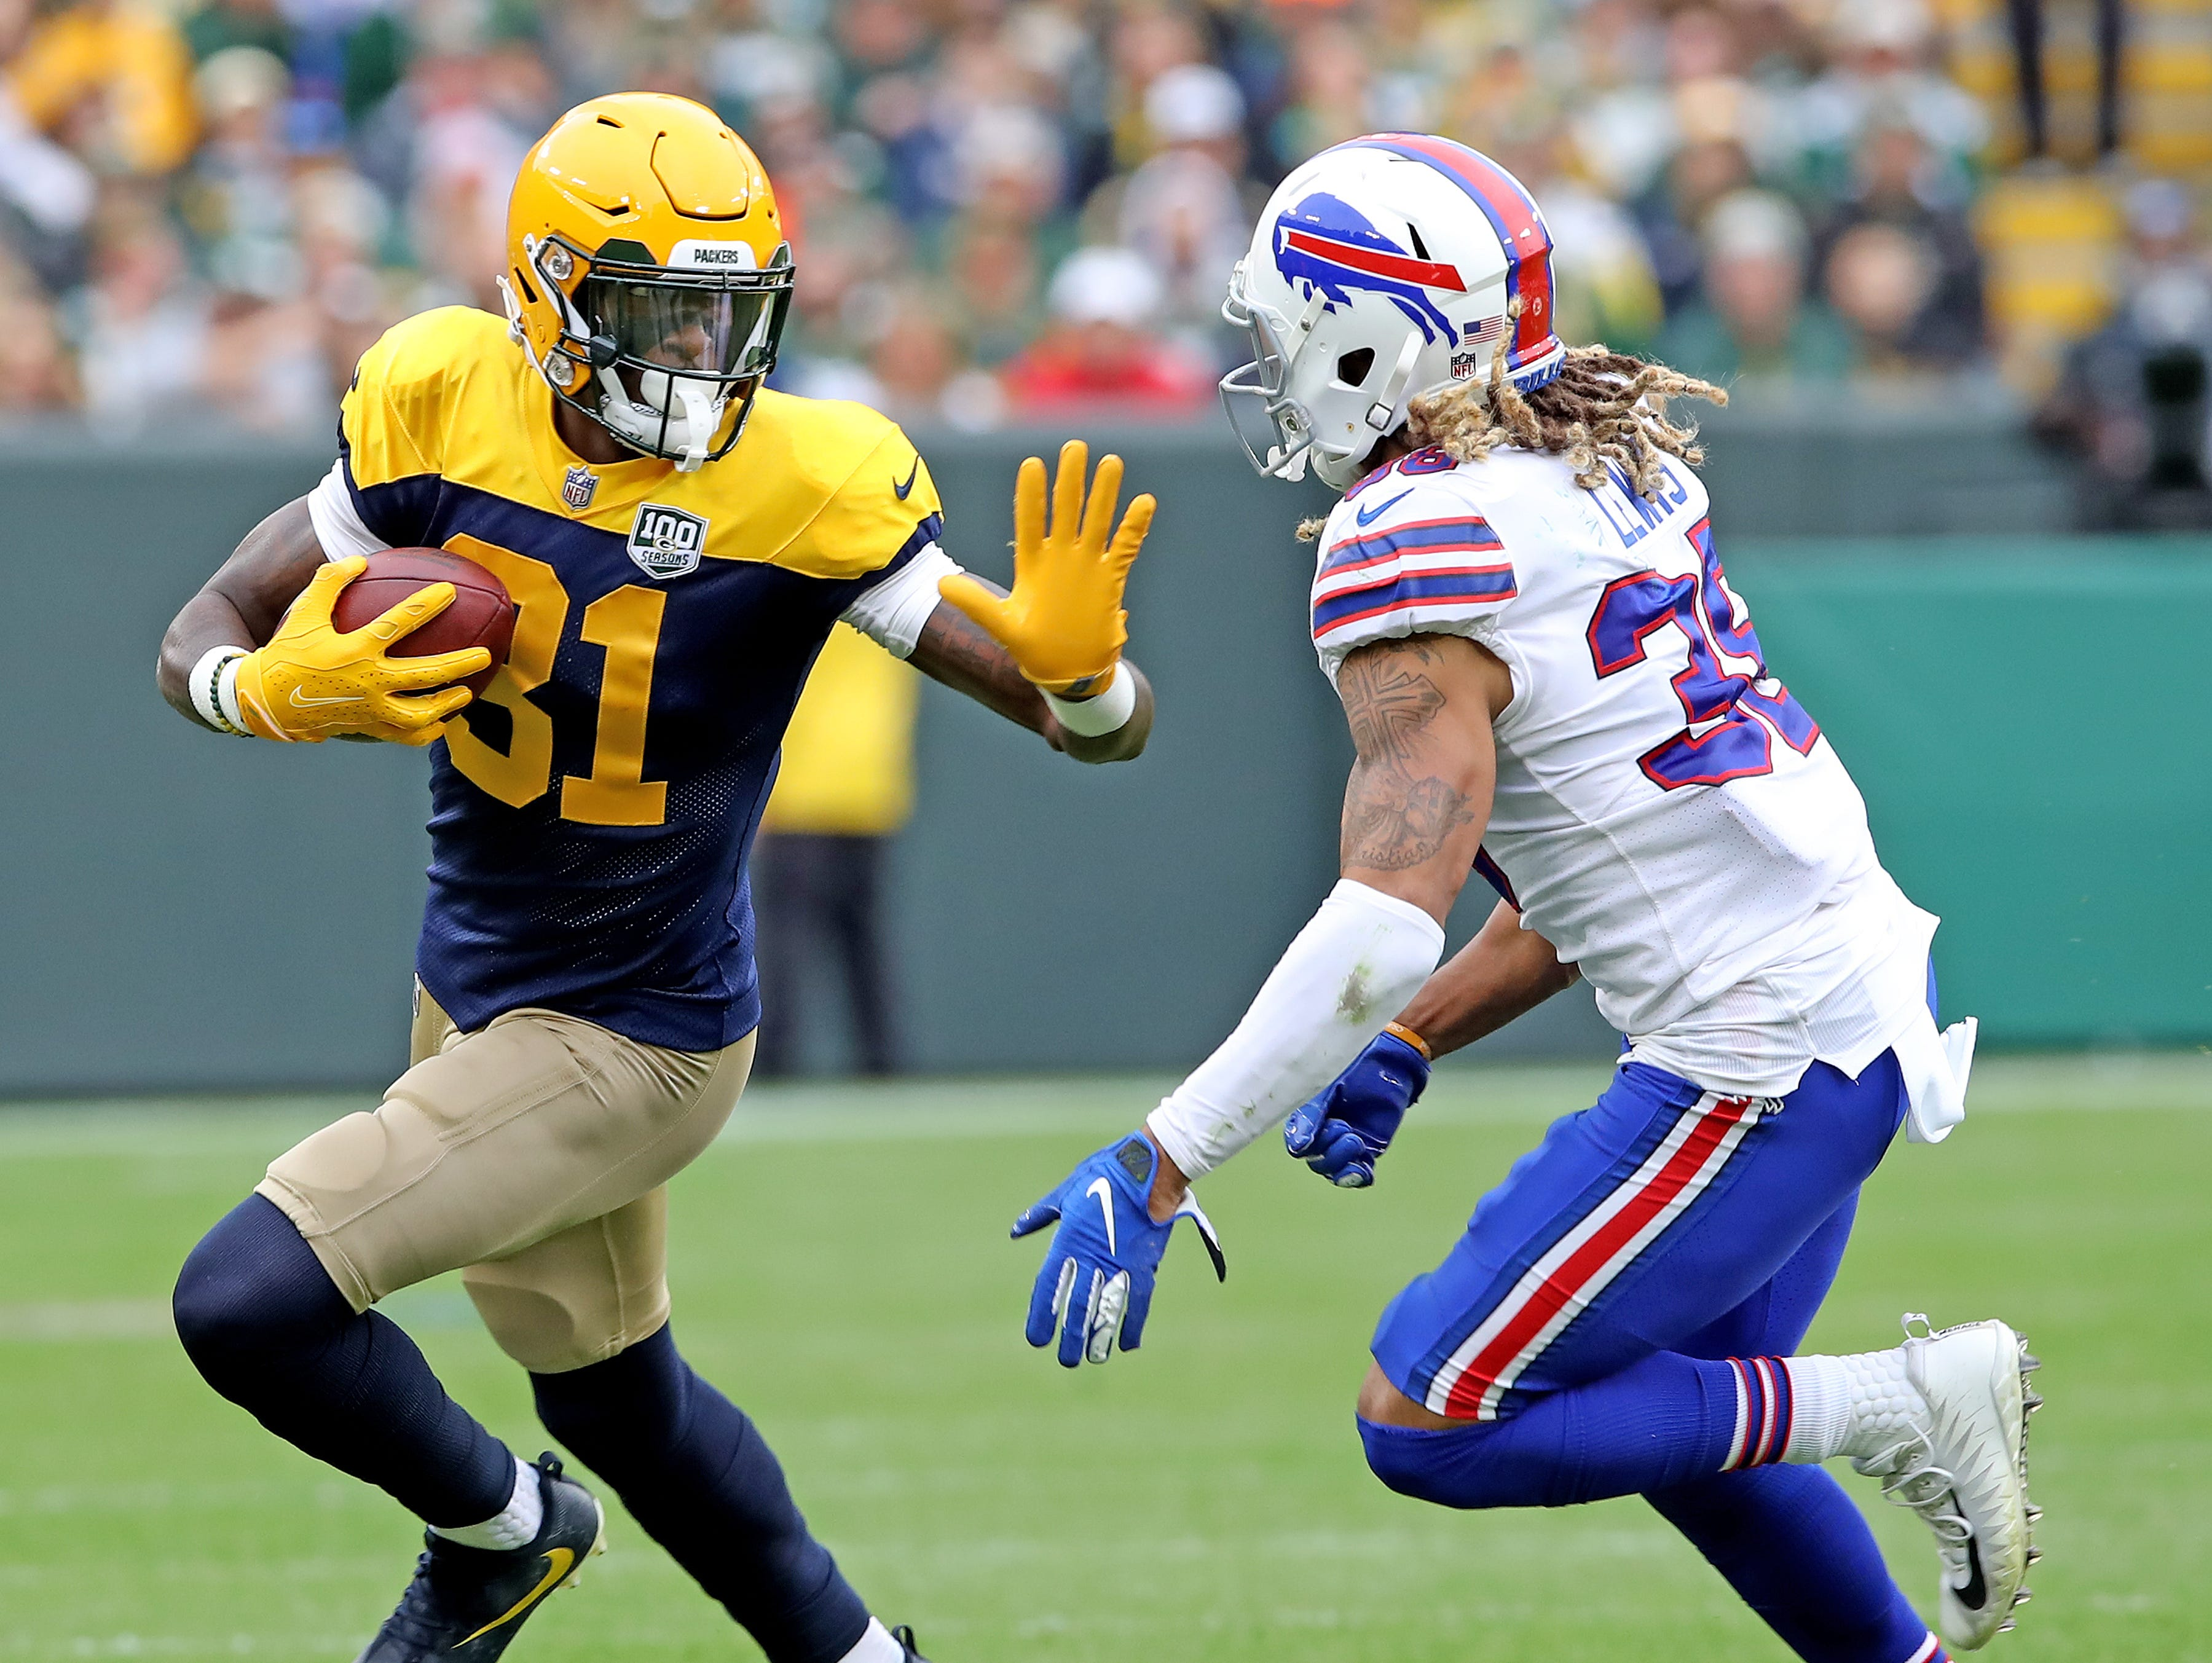 Green Bay Packers wide receiver Geronimo Allison (81) fends off defensive back Ryan Lewis (38) against the Buffalo Bills Sunday September 30, 2018 at Lambeau Field in Green Bay, Wis.